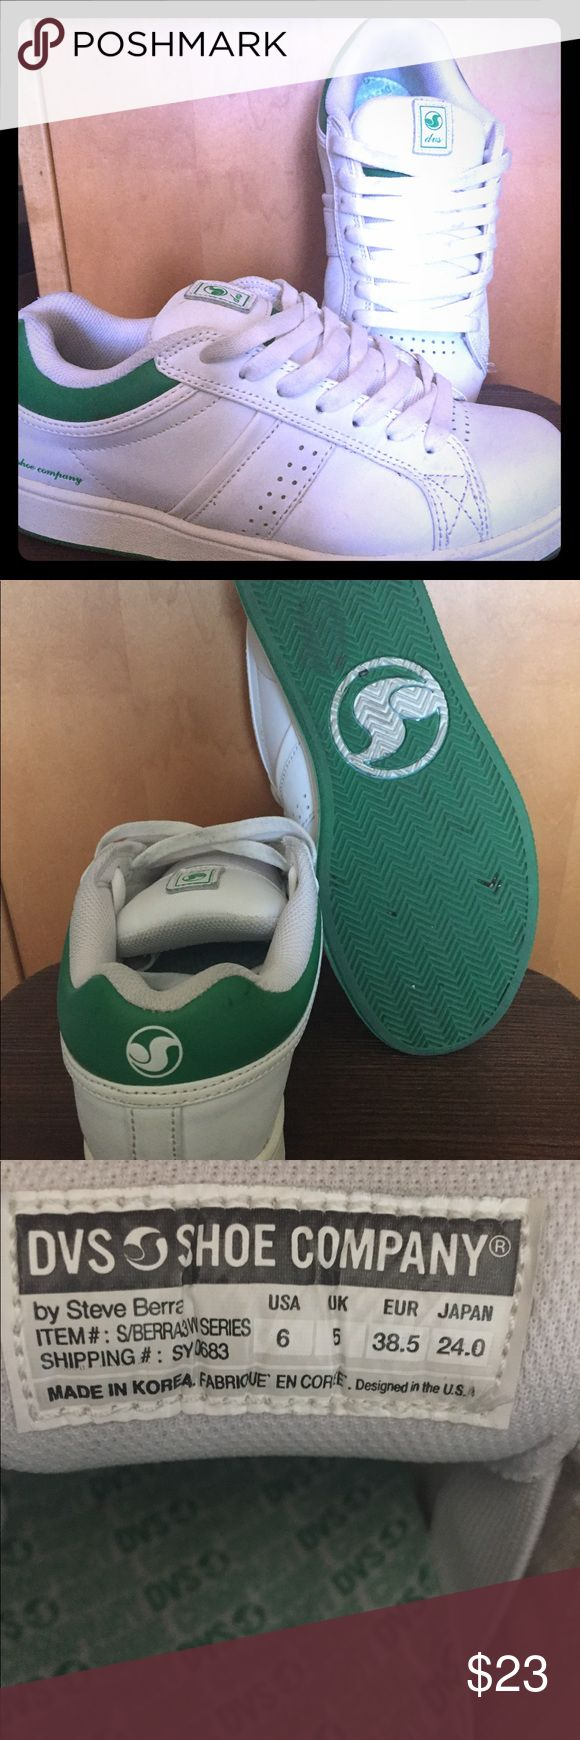 Skate shoes DVS Steve Berra skate shoes.  Only used a handful of times.  Great condition DVS Shoes Sneakers